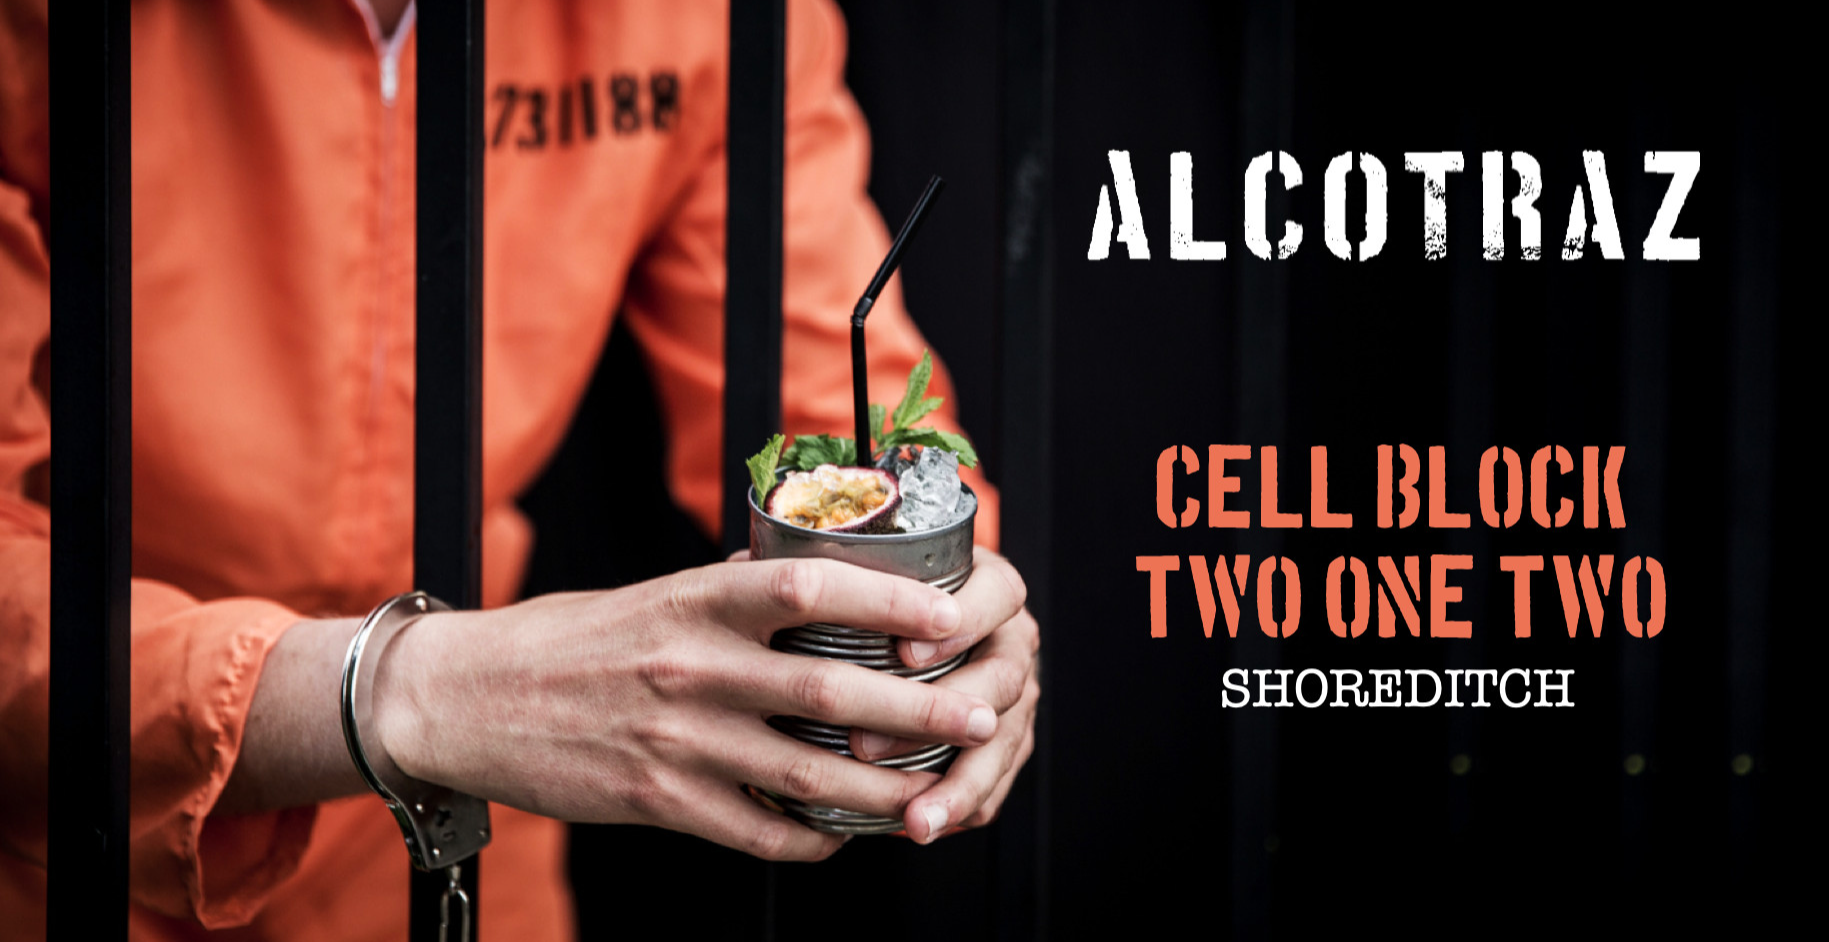 Alcotraz: Cell Block Two One Two